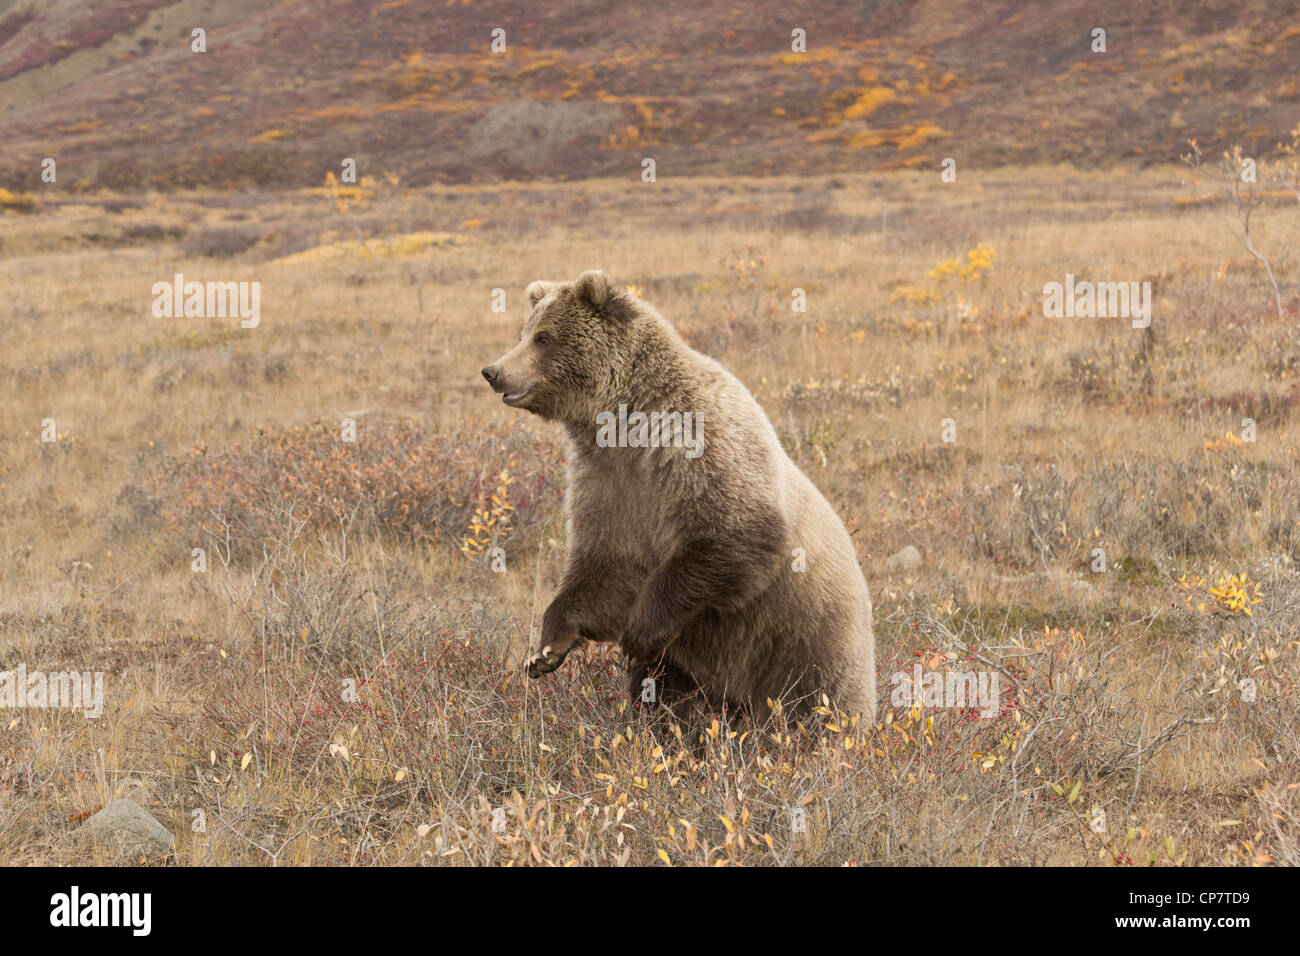 Grizzly (Ursus arctos) bear stands up for a better view of the surrounding tundra Denali National Park, Alaska - Stock Image